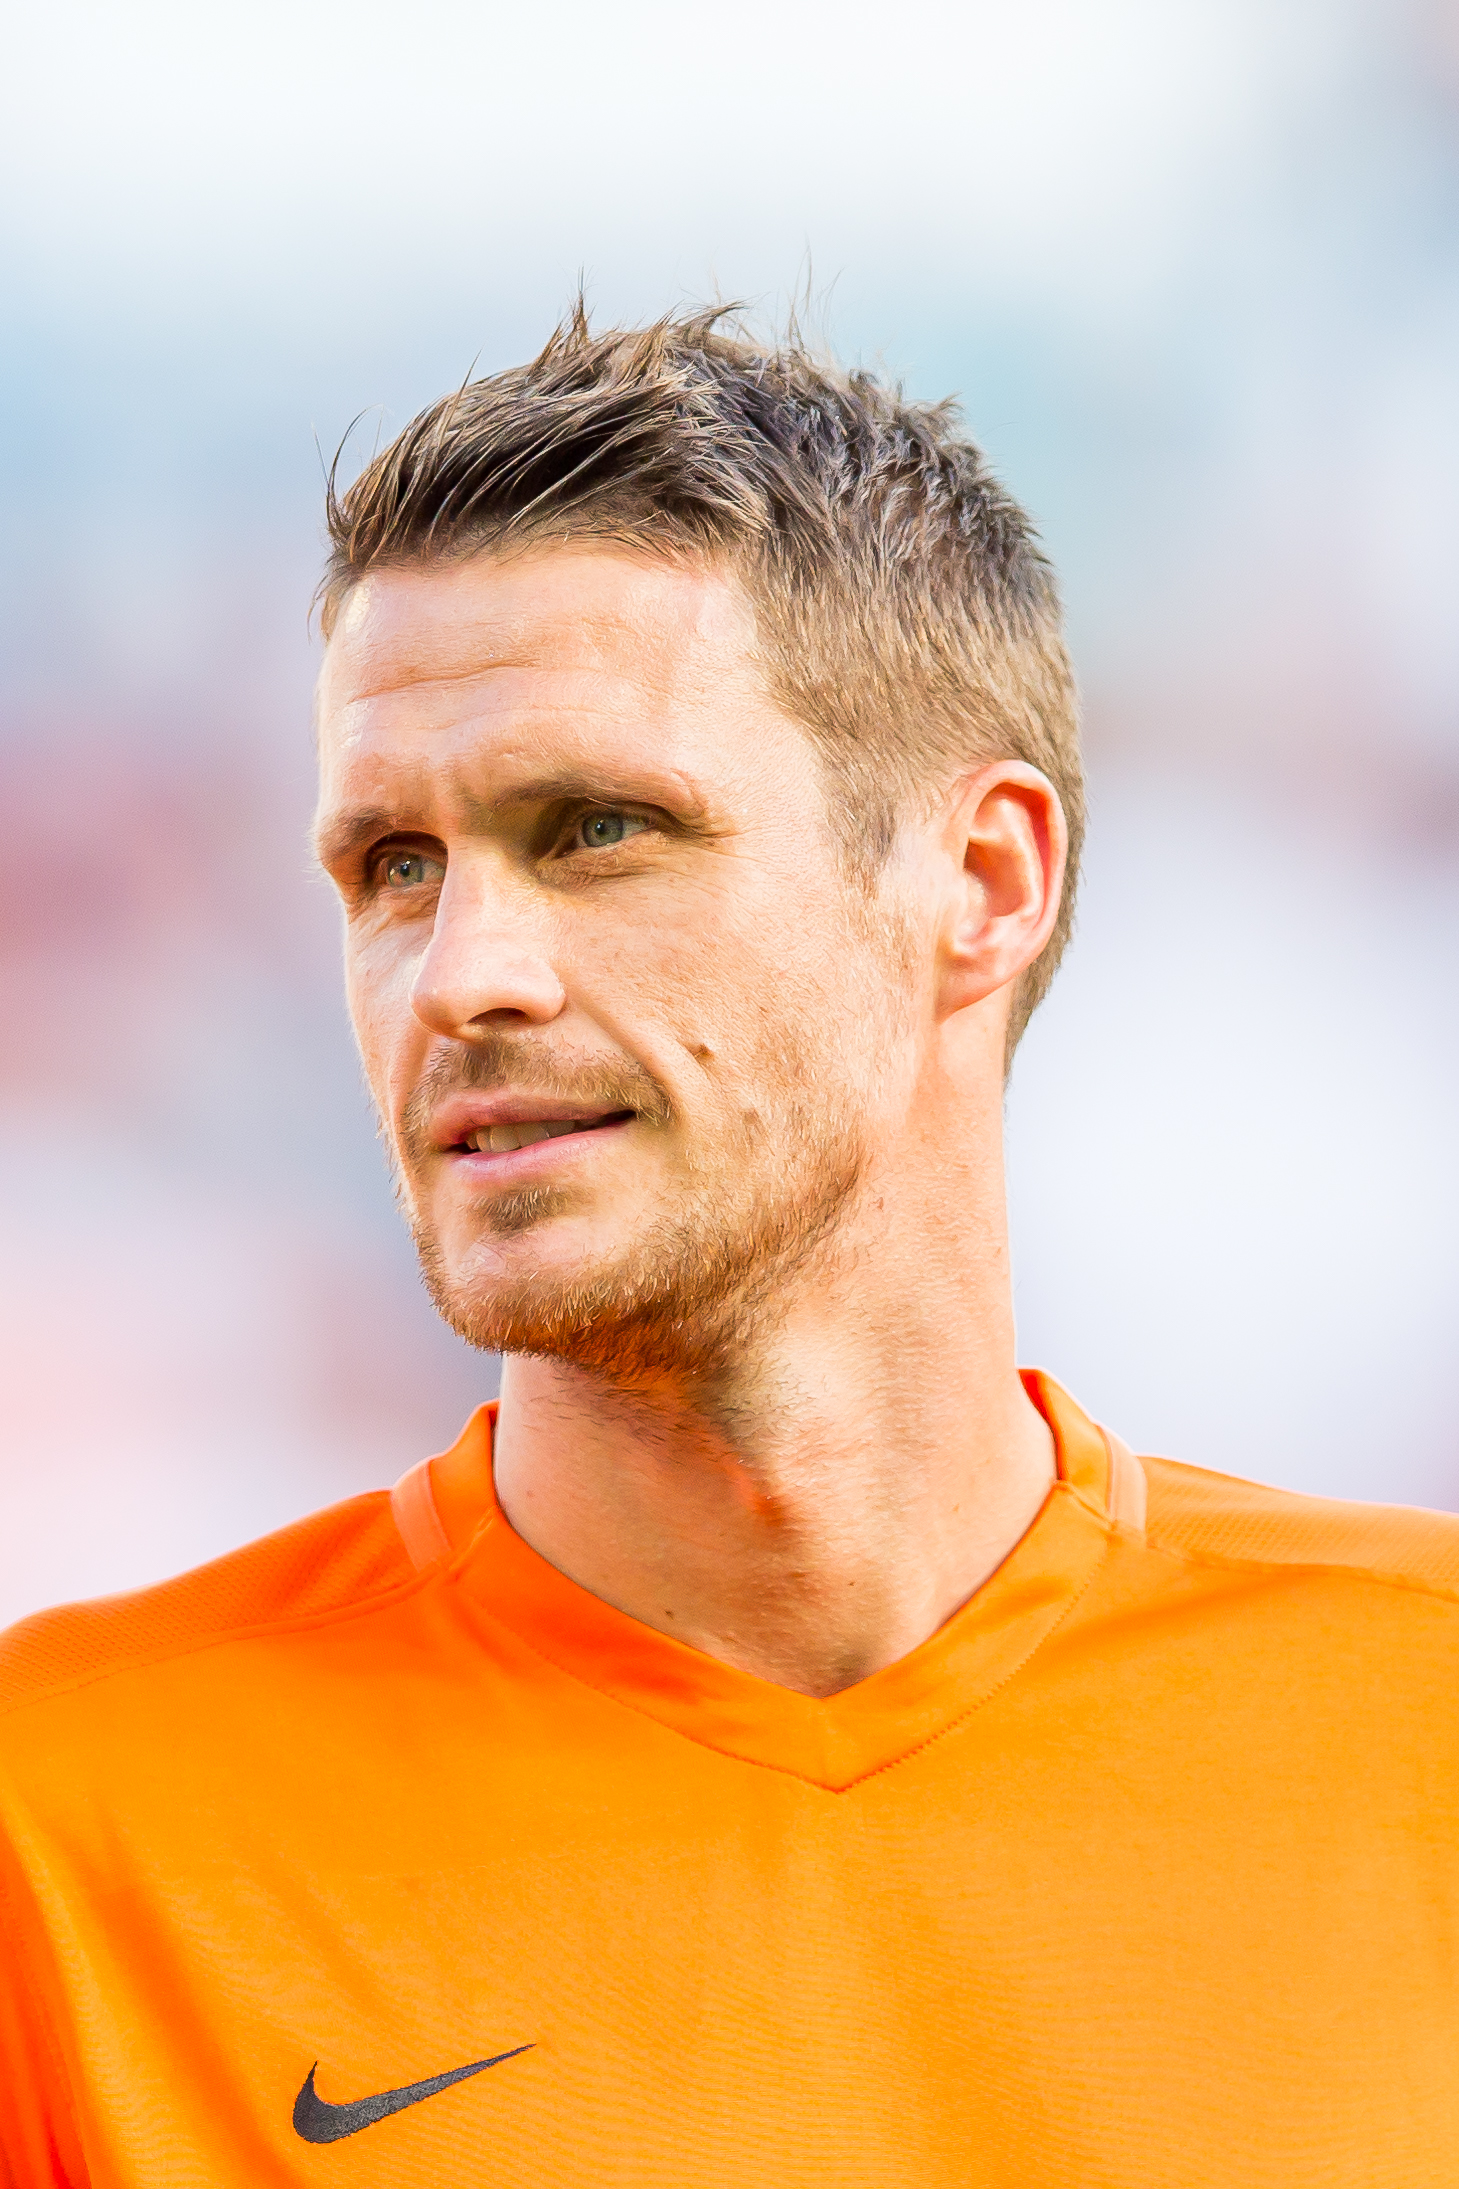 The 38-year old son of father (?) and mother(?) Sebastian Kehl in 2018 photo. Sebastian Kehl earned a  million dollar salary - leaving the net worth at 2.2 million in 2018